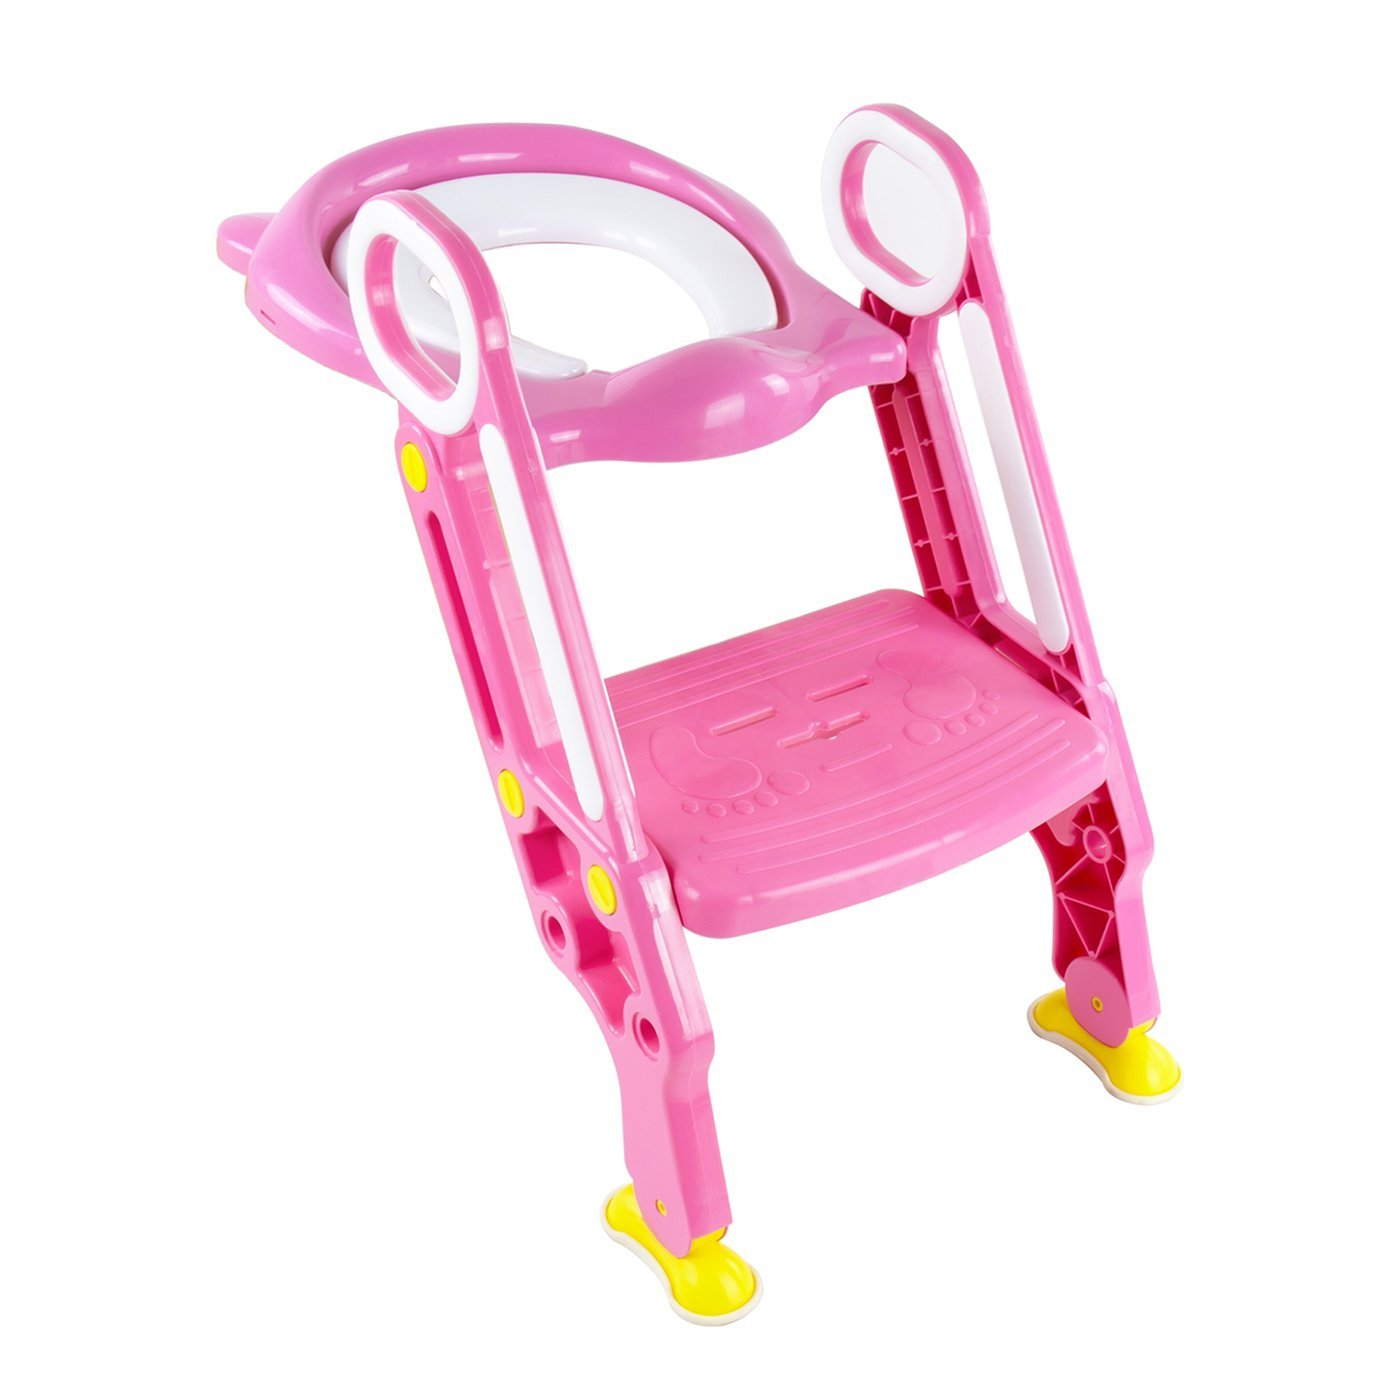 Baby Potty Training - Toilet Seat Potty Ladder with Steps (Pink) SQ Pro